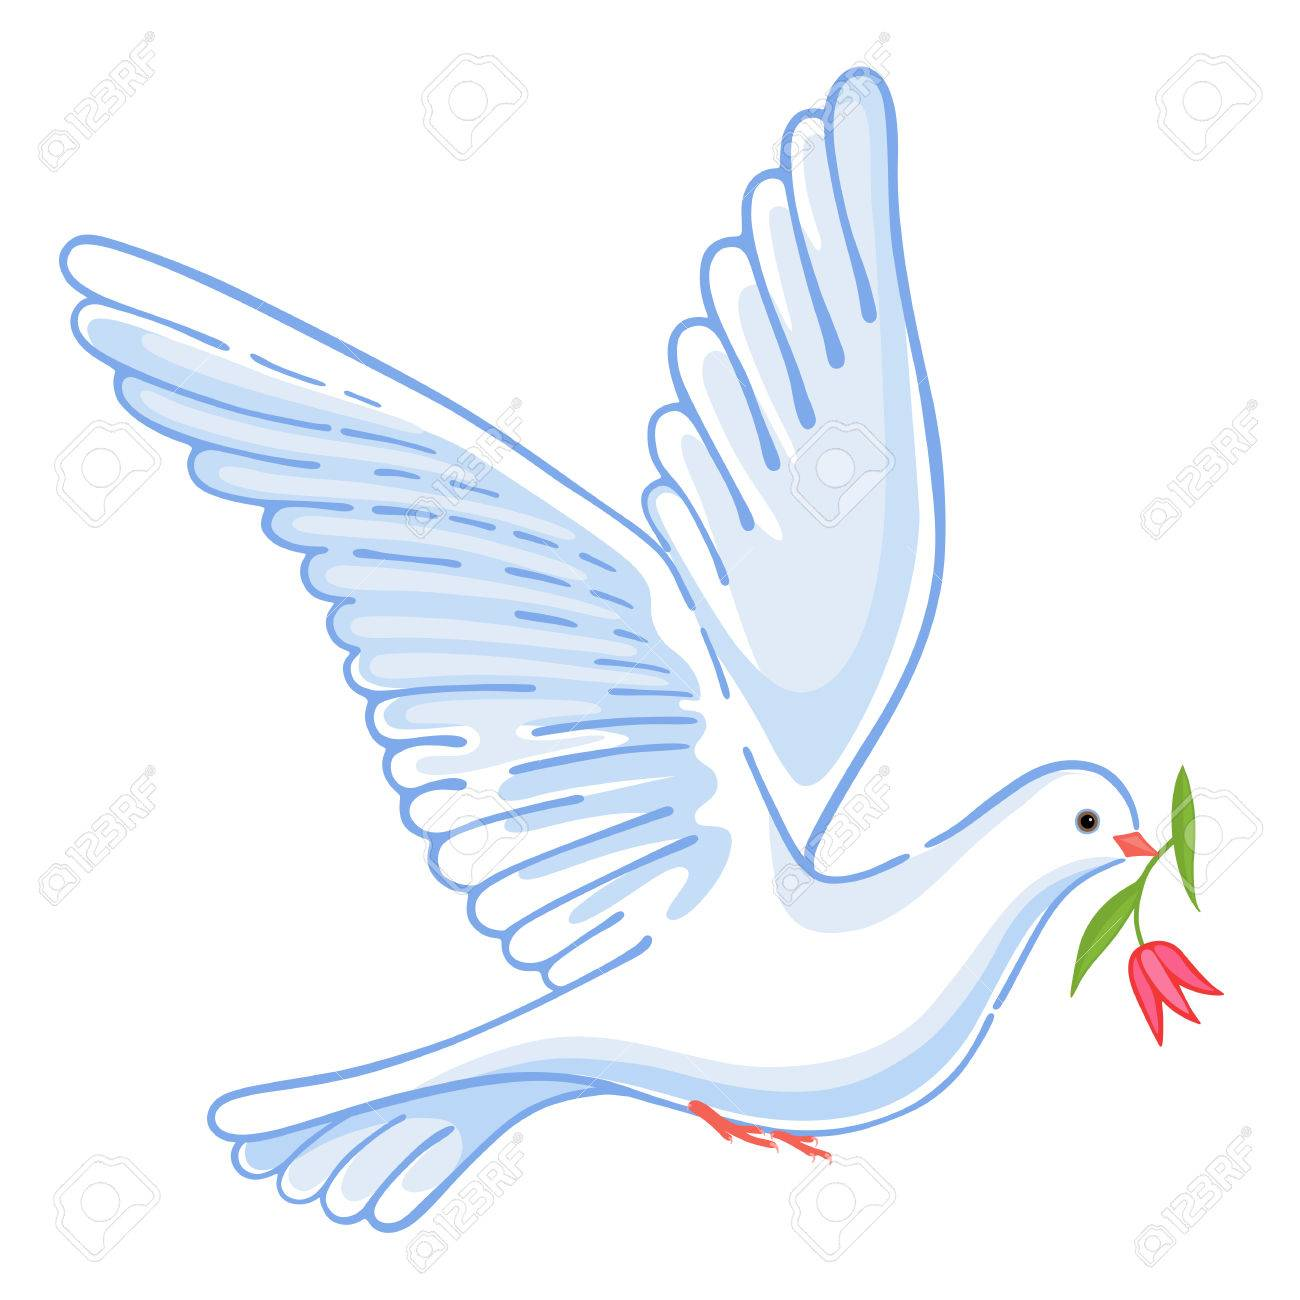 Soaring dove with flower, vector illustration isolated on background - 59125254